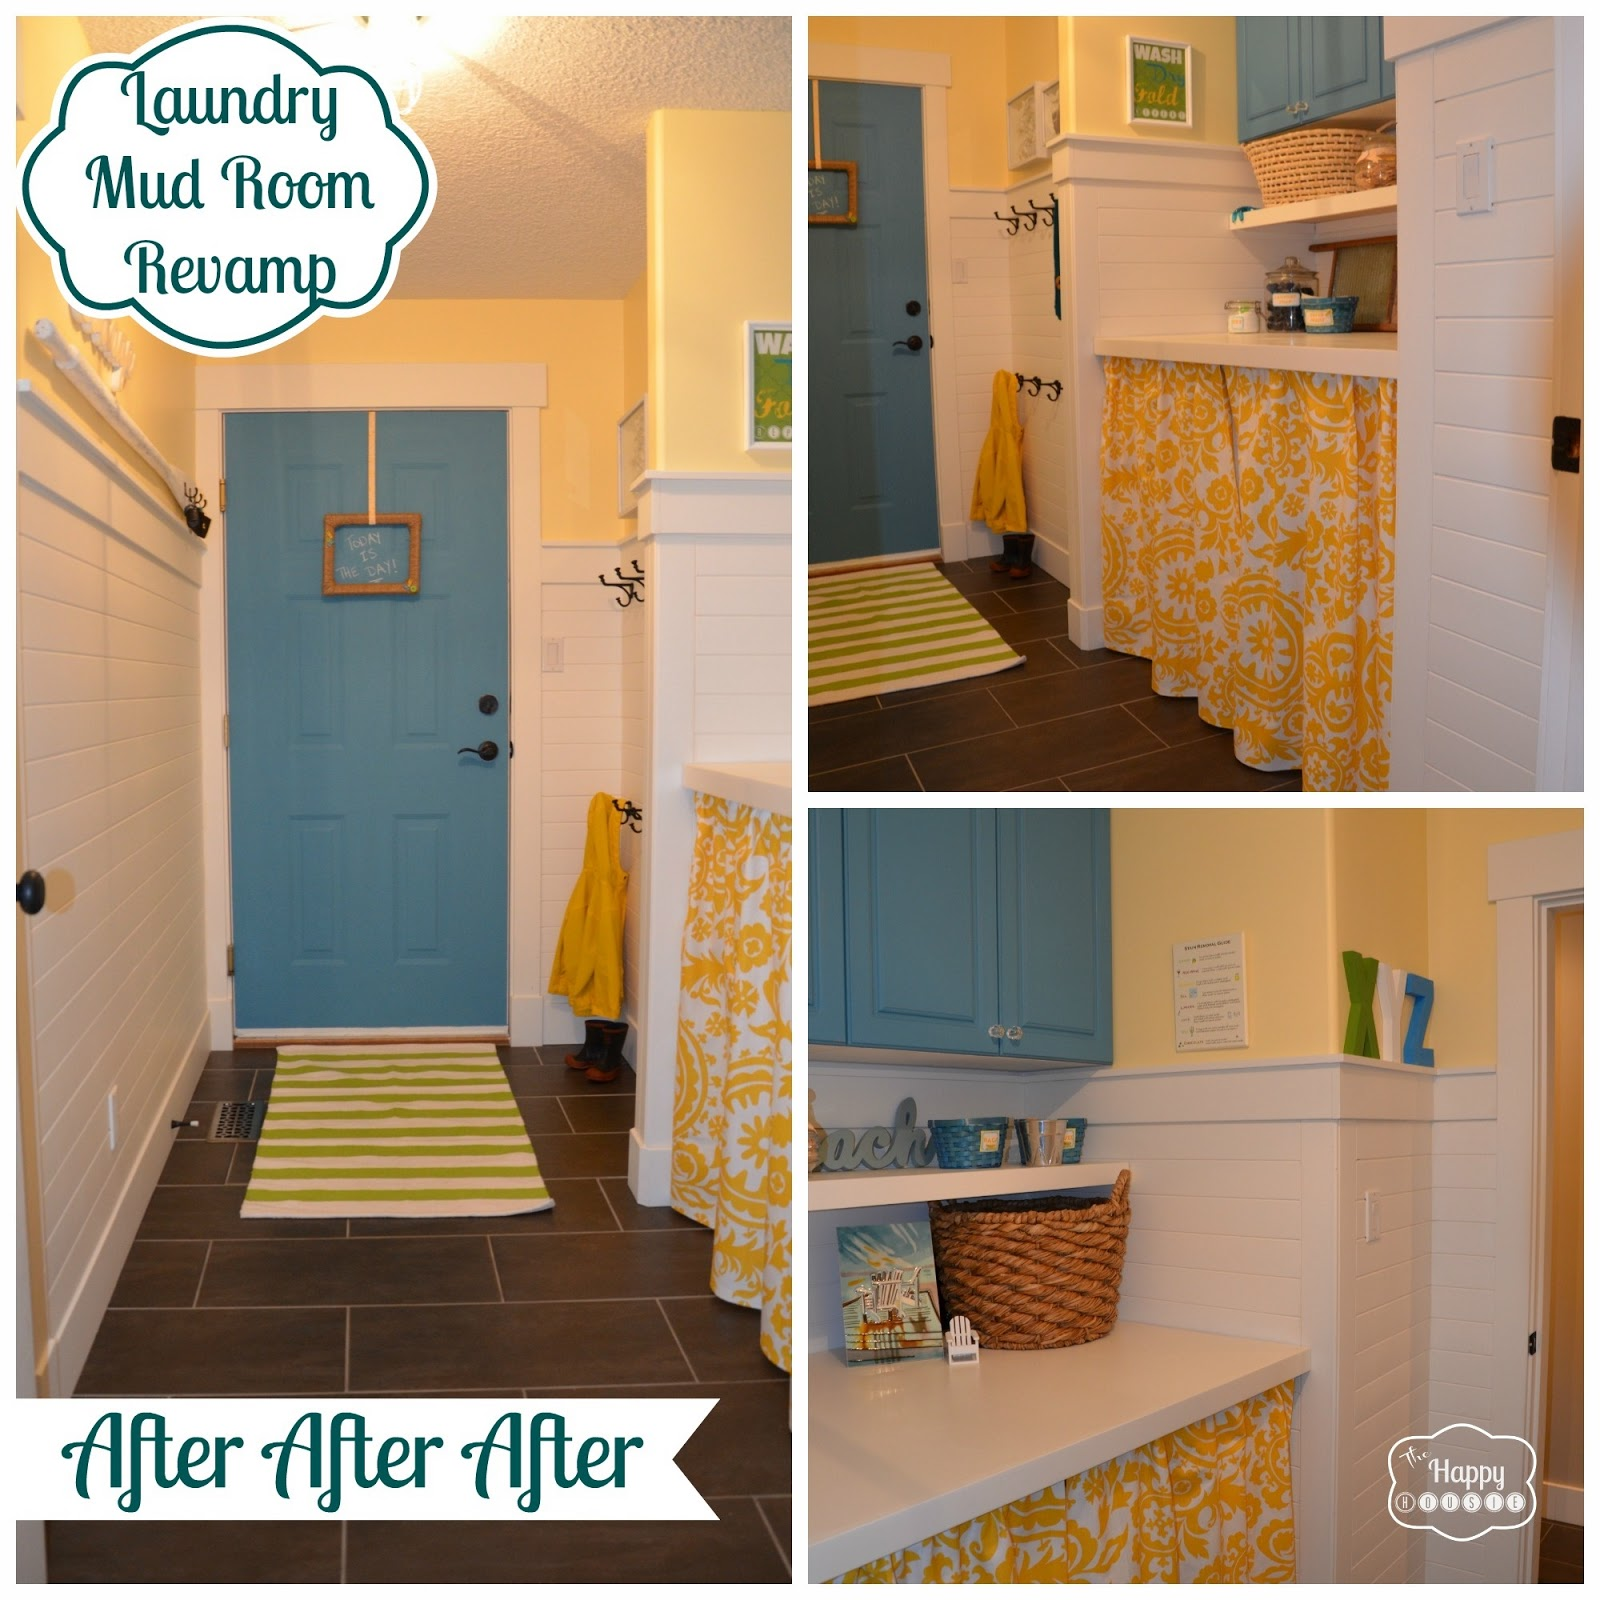 Laundry Mud Room Part - 46: We Managed To Totally Change The Look Of Our Laundry/mud Room For A Mere  $340 (we Already Owned The Laundry Machines:) And I Couldnu0027t Be More  Pleased With ...